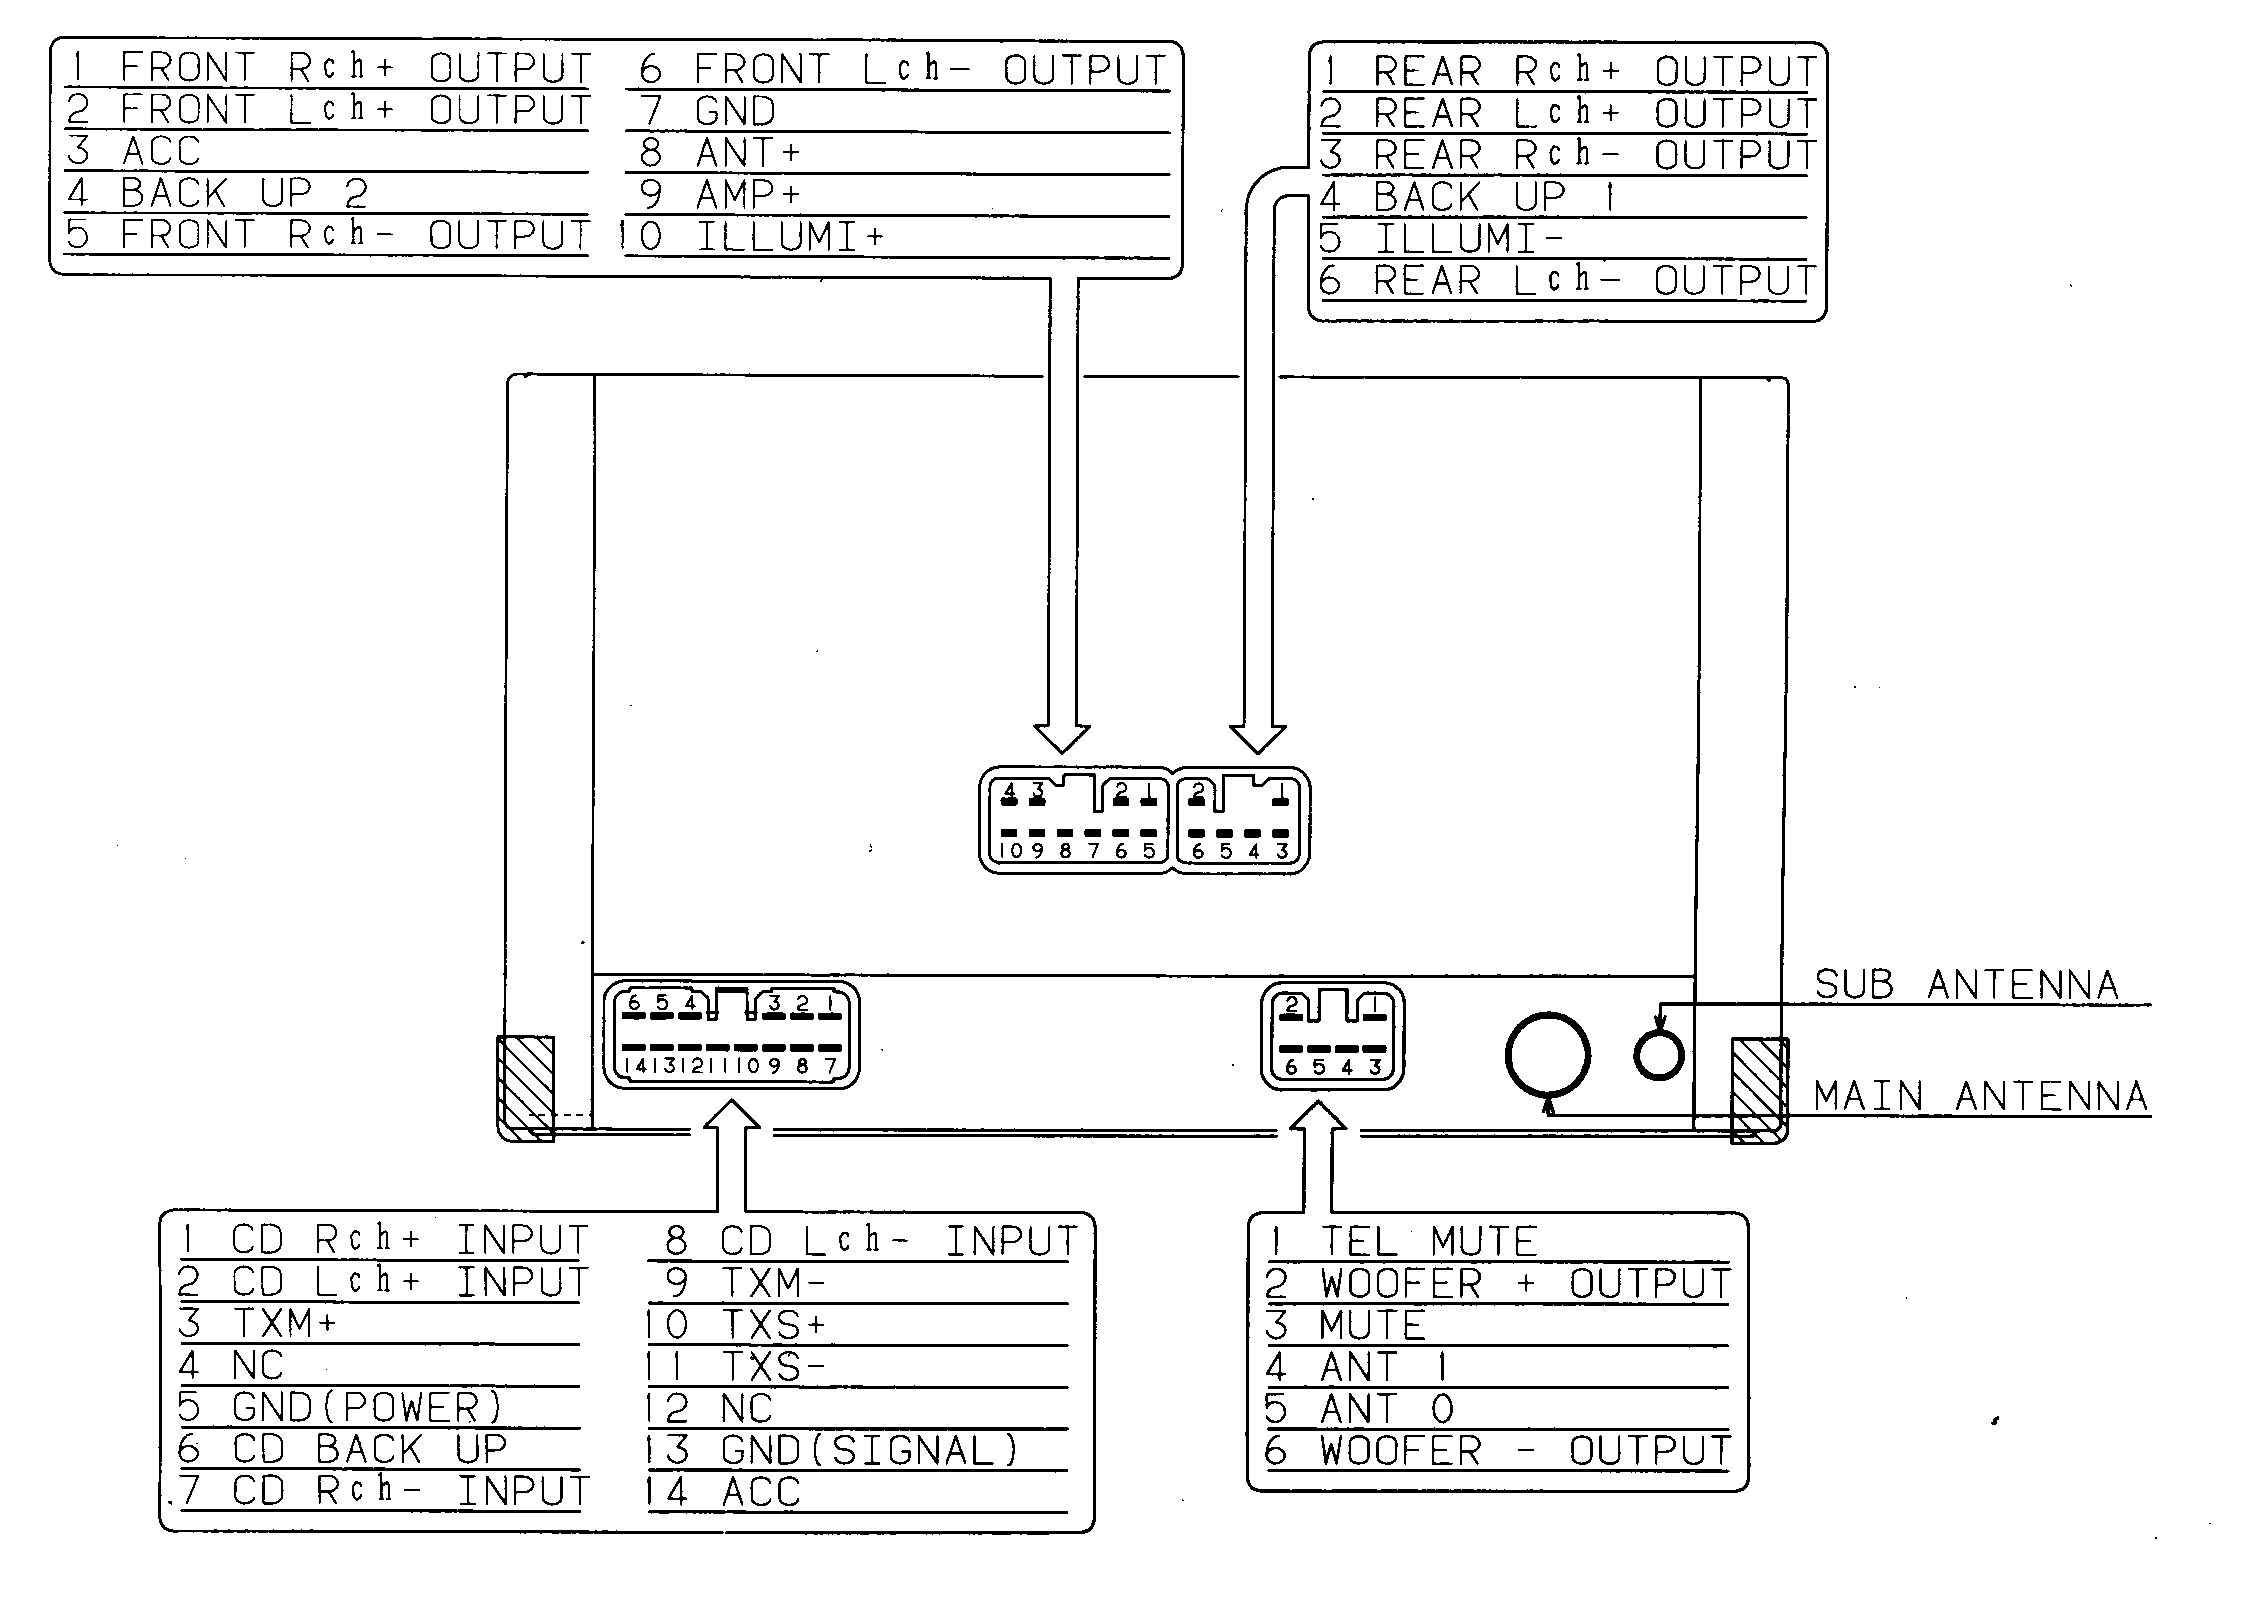 car radio wiring diagram: Car audio wire diagram codes lexus factory car stereo repair